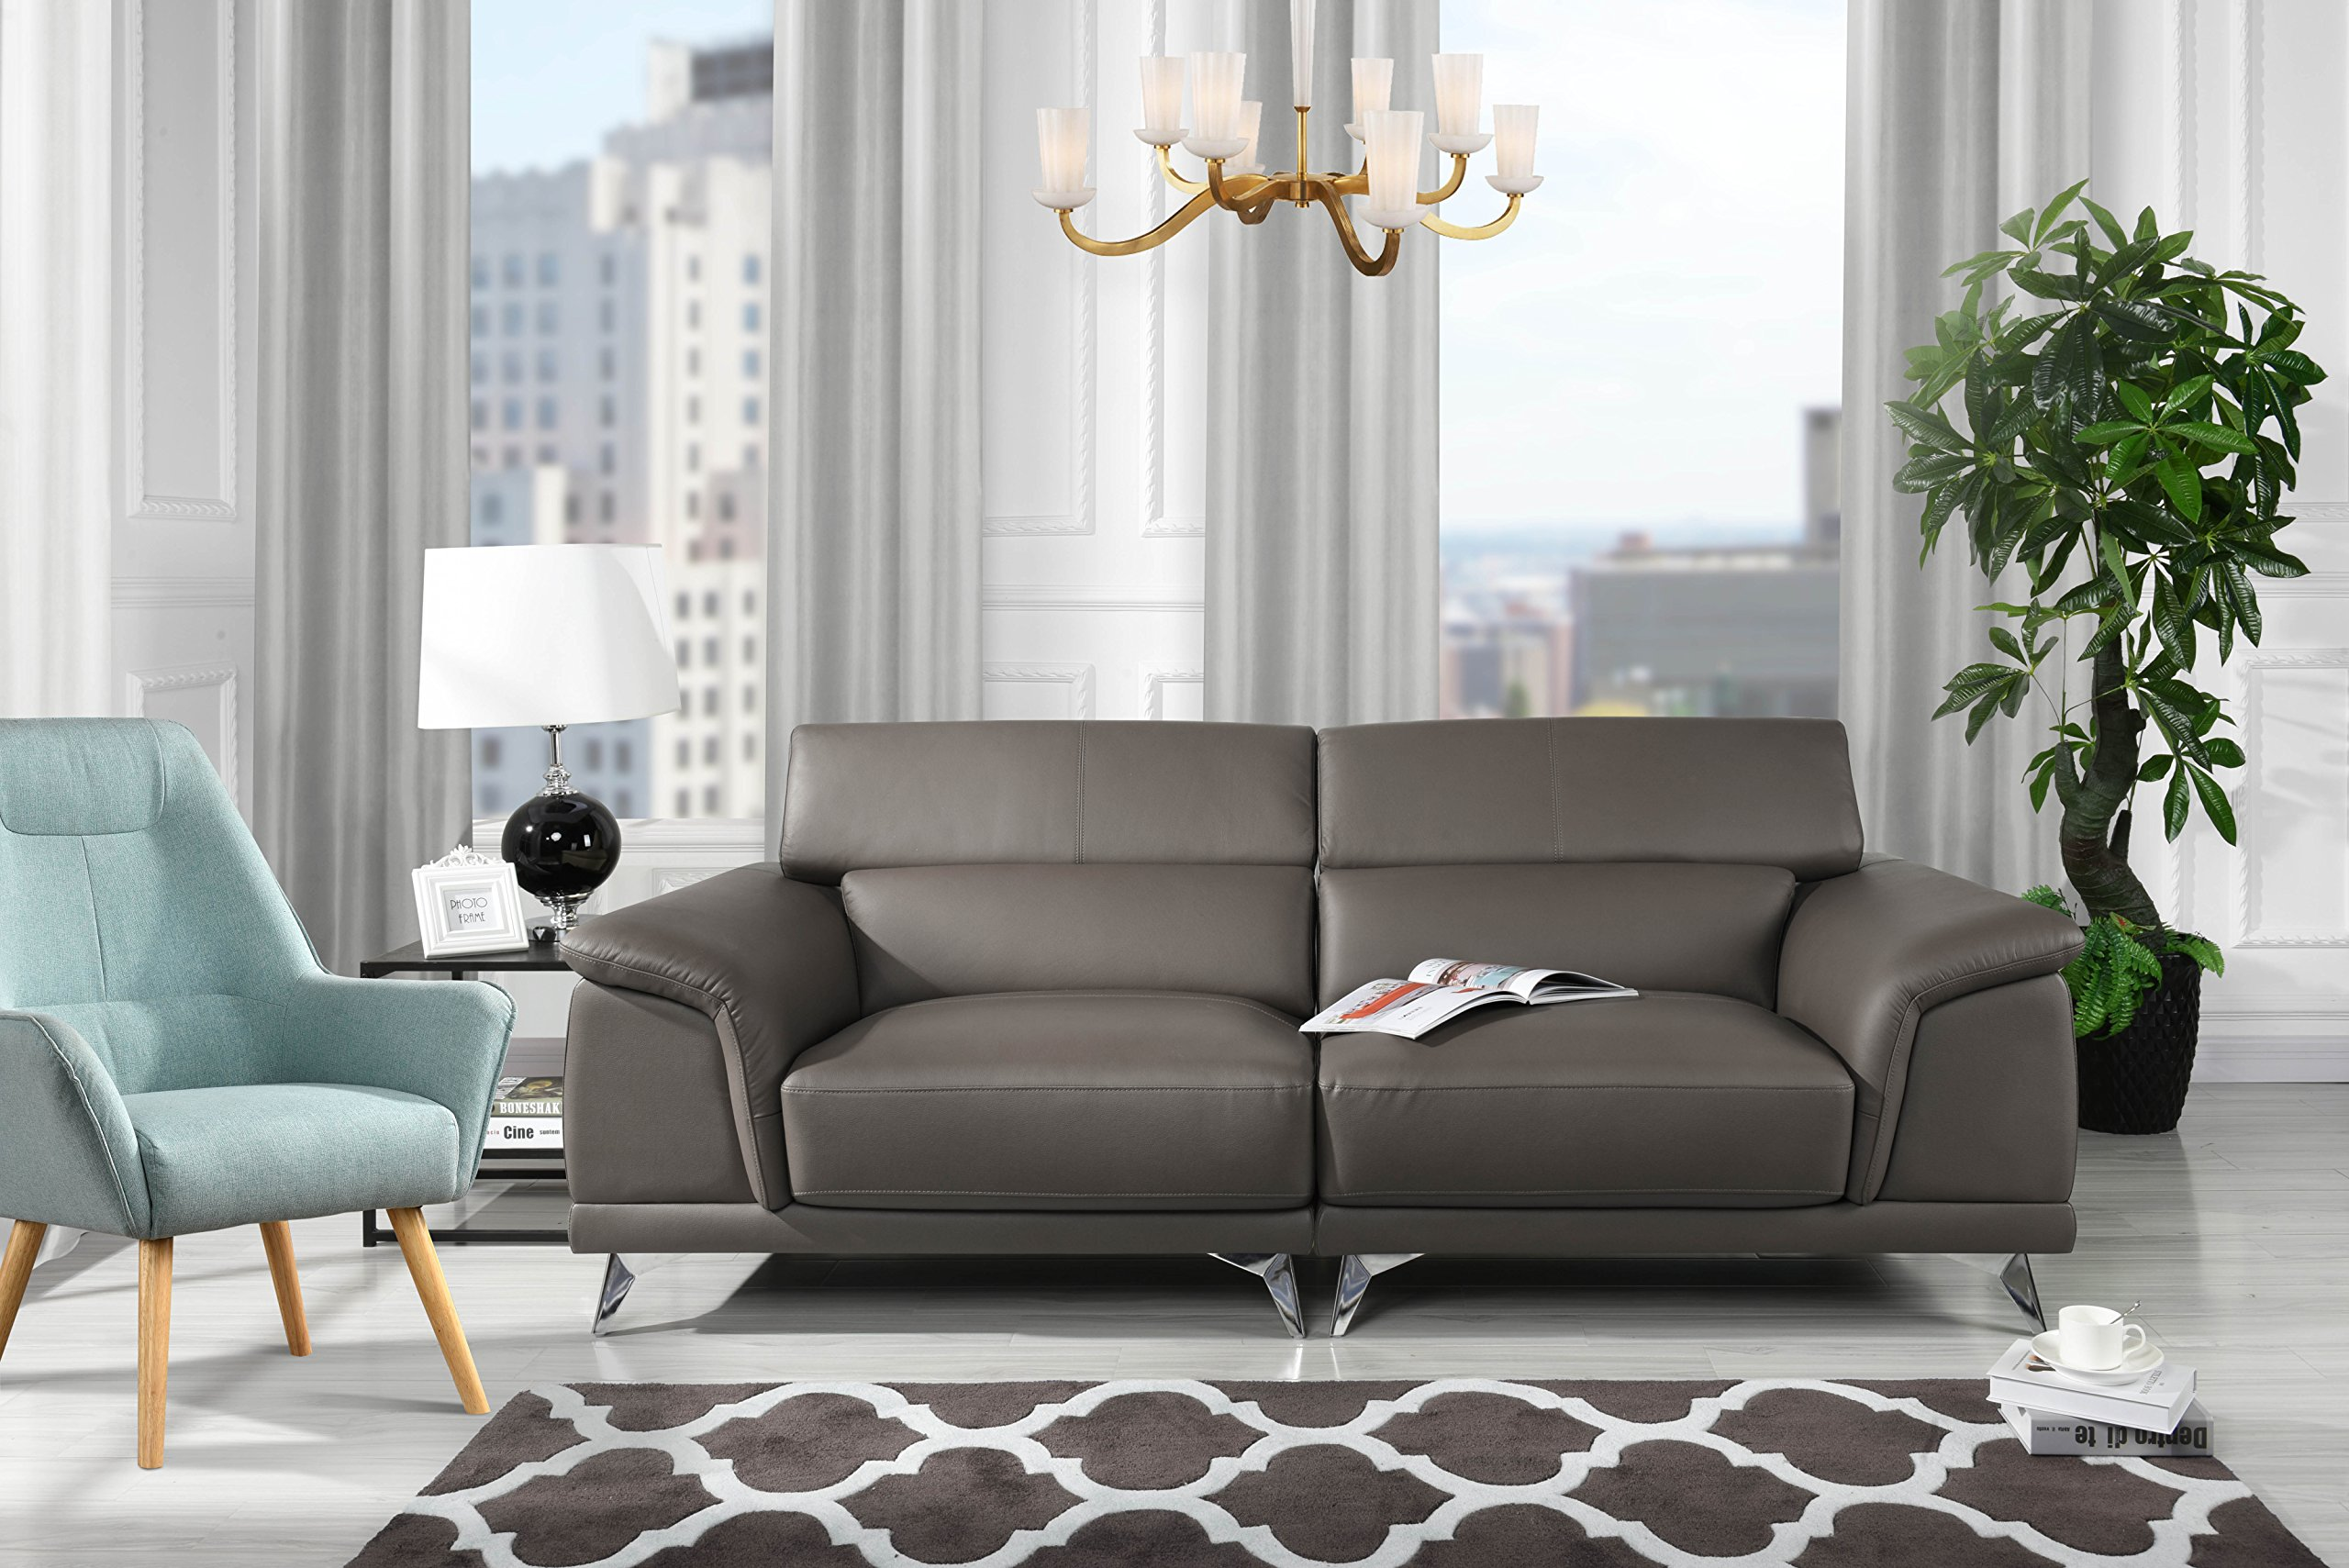 Divano Roma Furniture Modern Living Room Sofa with Adjustable Headrest (Grey) - Modern style couch featuring adjustable headrests to add a touch of modernism and functionality that is sure to make a statement. This living room sofa is upholstered in leather match on hardwood frame with steel chrome legs. Arm rests are designed to give this sofa a unique look and feel; the seats and back rest are are filled with firm foam made to last. - sofas-couches, living-room-furniture, living-room - 91j5TD6m1EL -